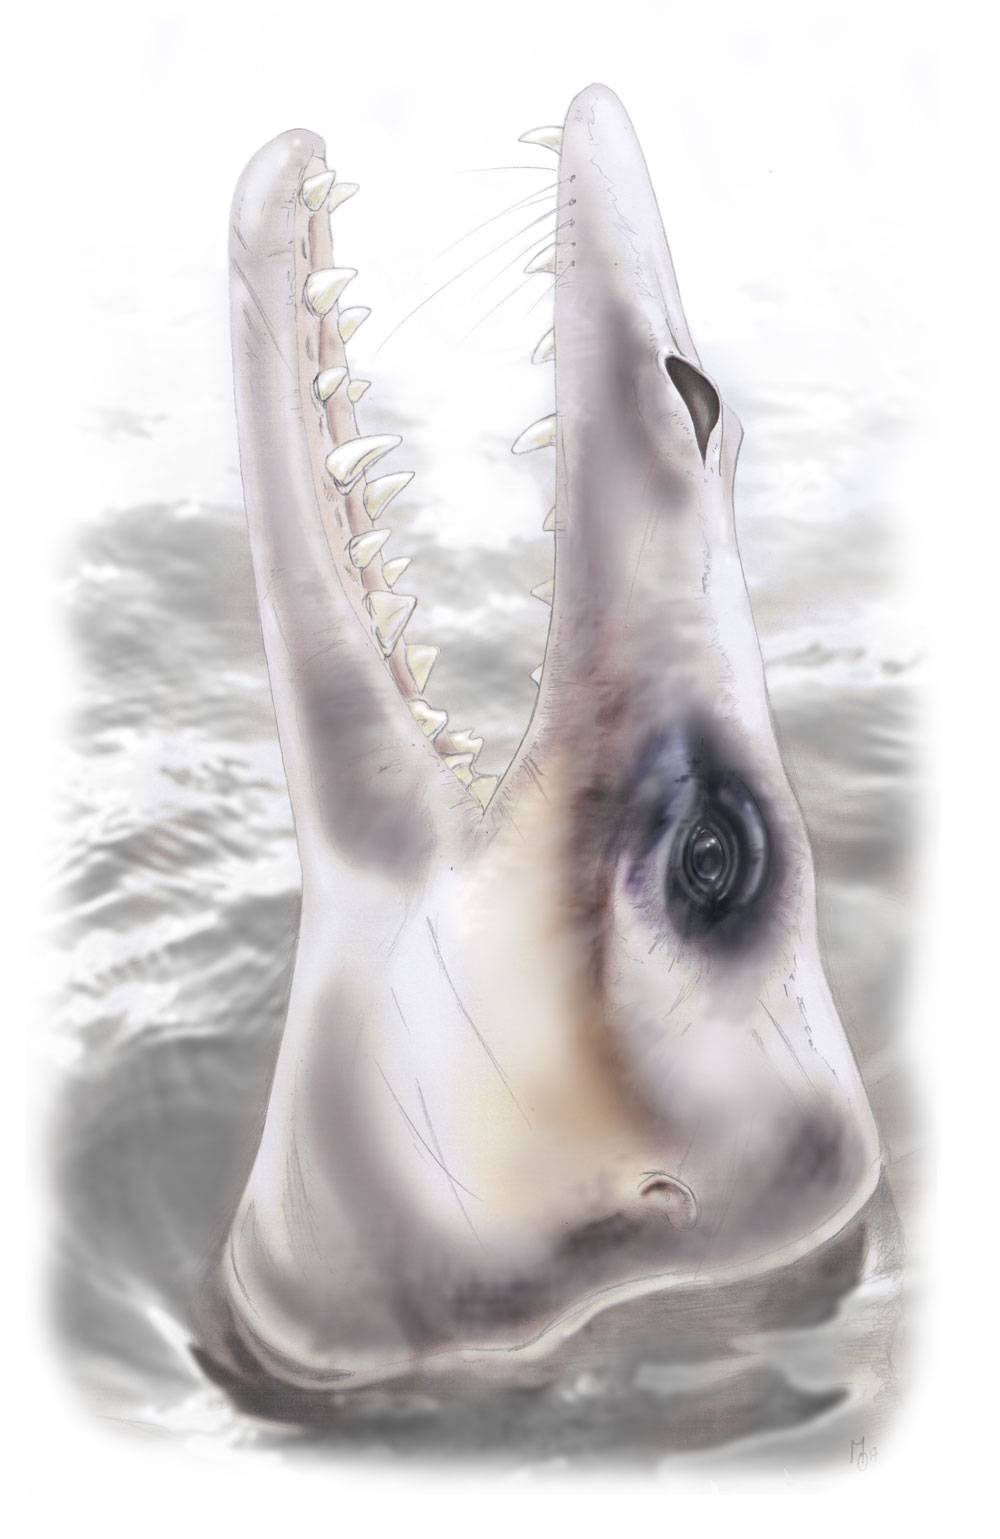 A new study indicates that the extraordinary hearing abilities of whales evolved after they became fully aquatic.